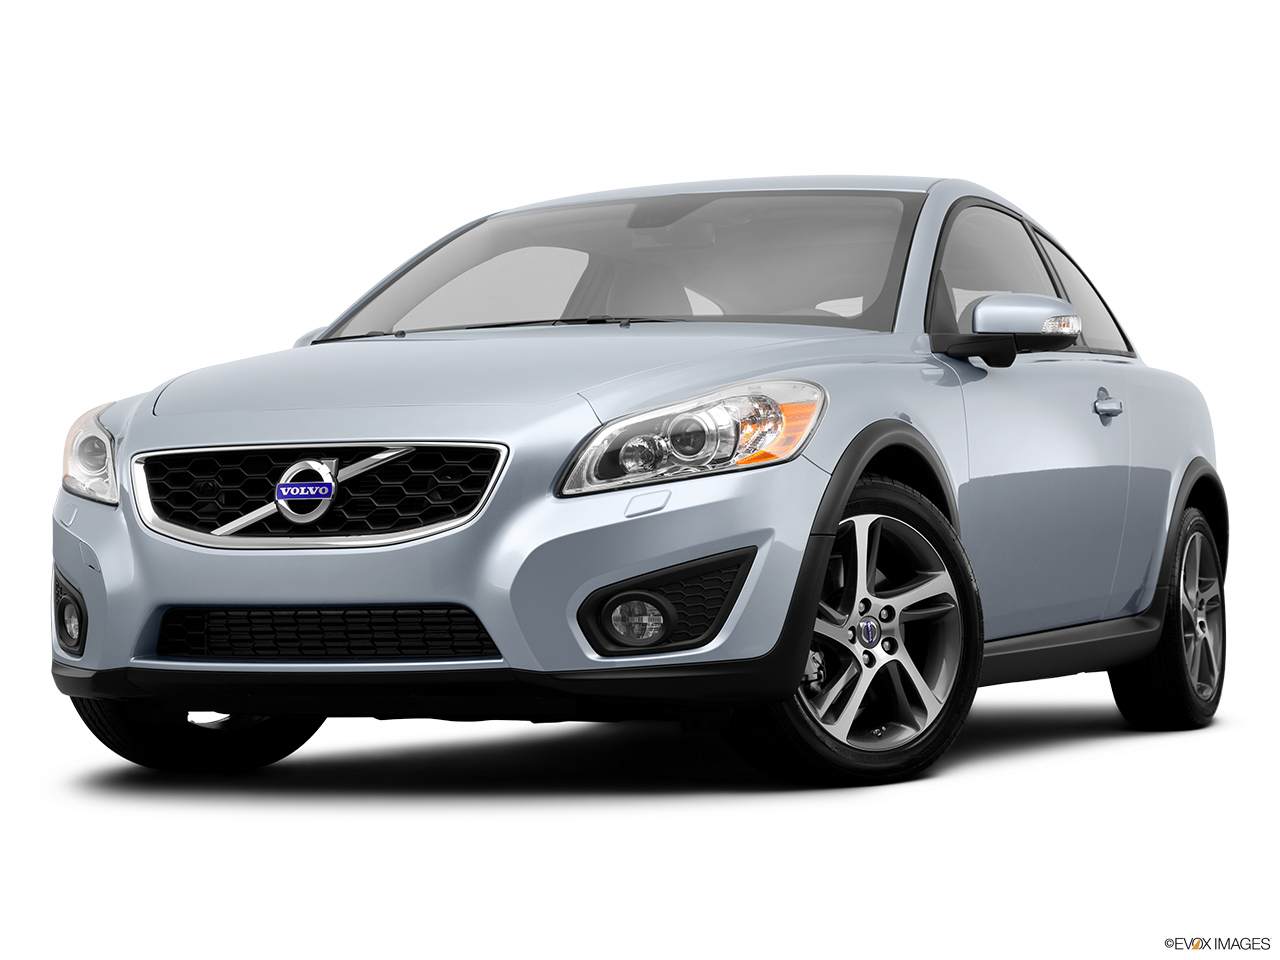 2013 Volvo C30 T5 Premier Plus Front angle view, low wide perspective.